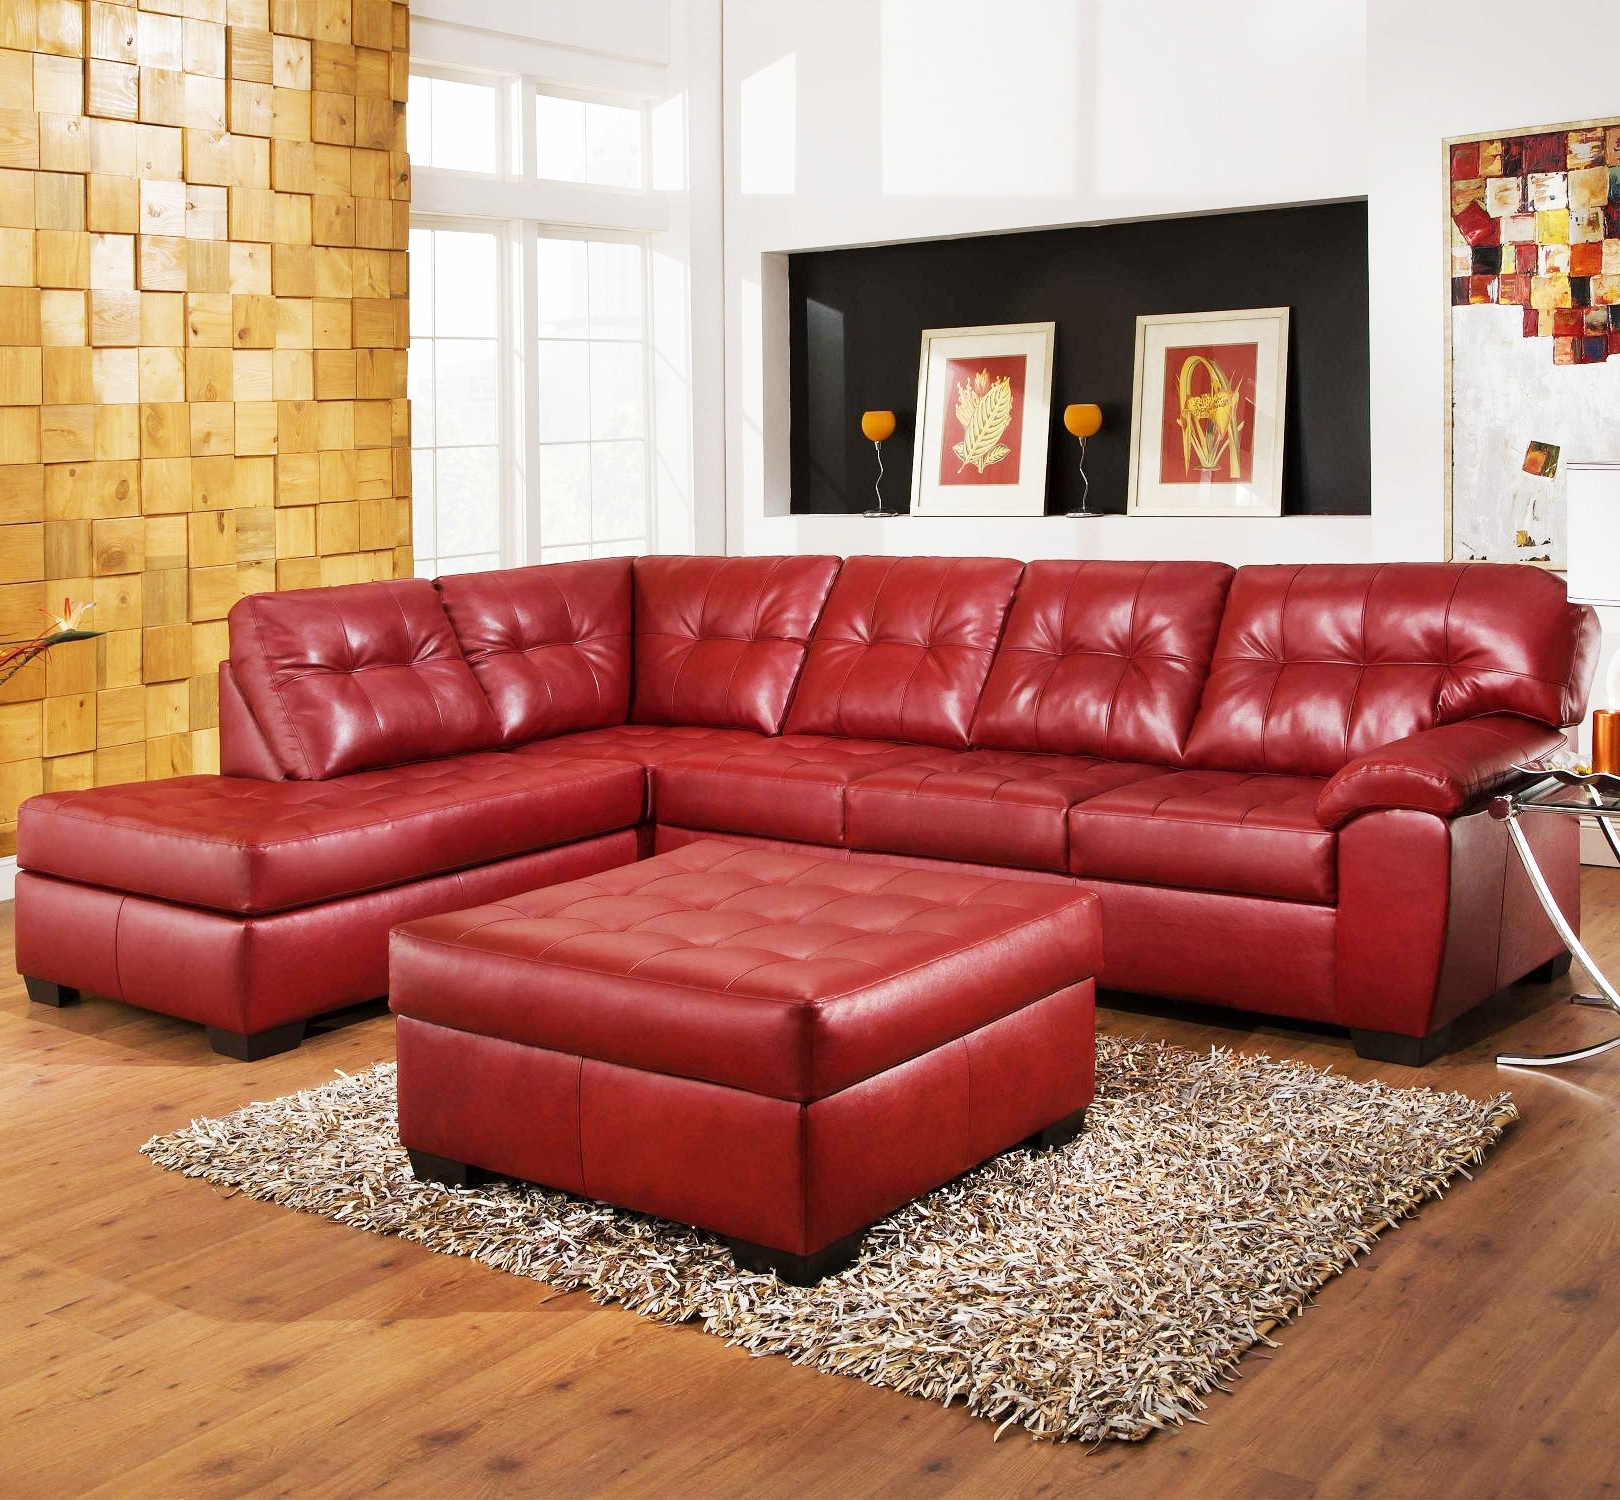 Small Red Leather Sectional Sofas With Best And Newest Sofas : Sectional Couch Small Sectional Couch Red Sectional Couch (View 3 of 15)